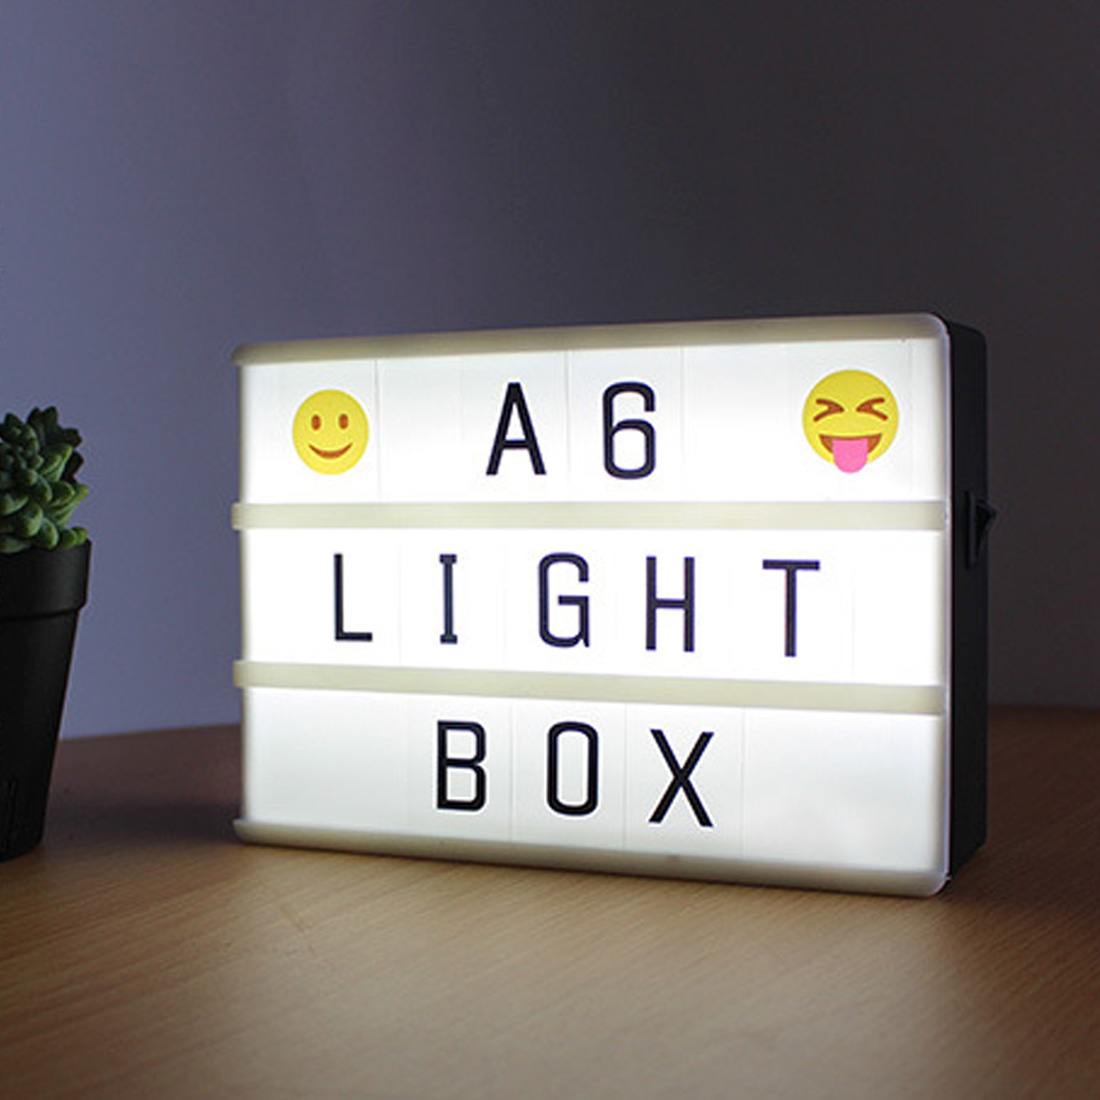 Premuim A6 Lightbox Light Letters Combination Cinematic Light Box Card LED Lamp Luminous Box DIY Symbols NumbersPremuim A6 Lightbox Light Letters Combination Cinematic Light Box Card LED Lamp Luminous Box DIY Symbols Numbers